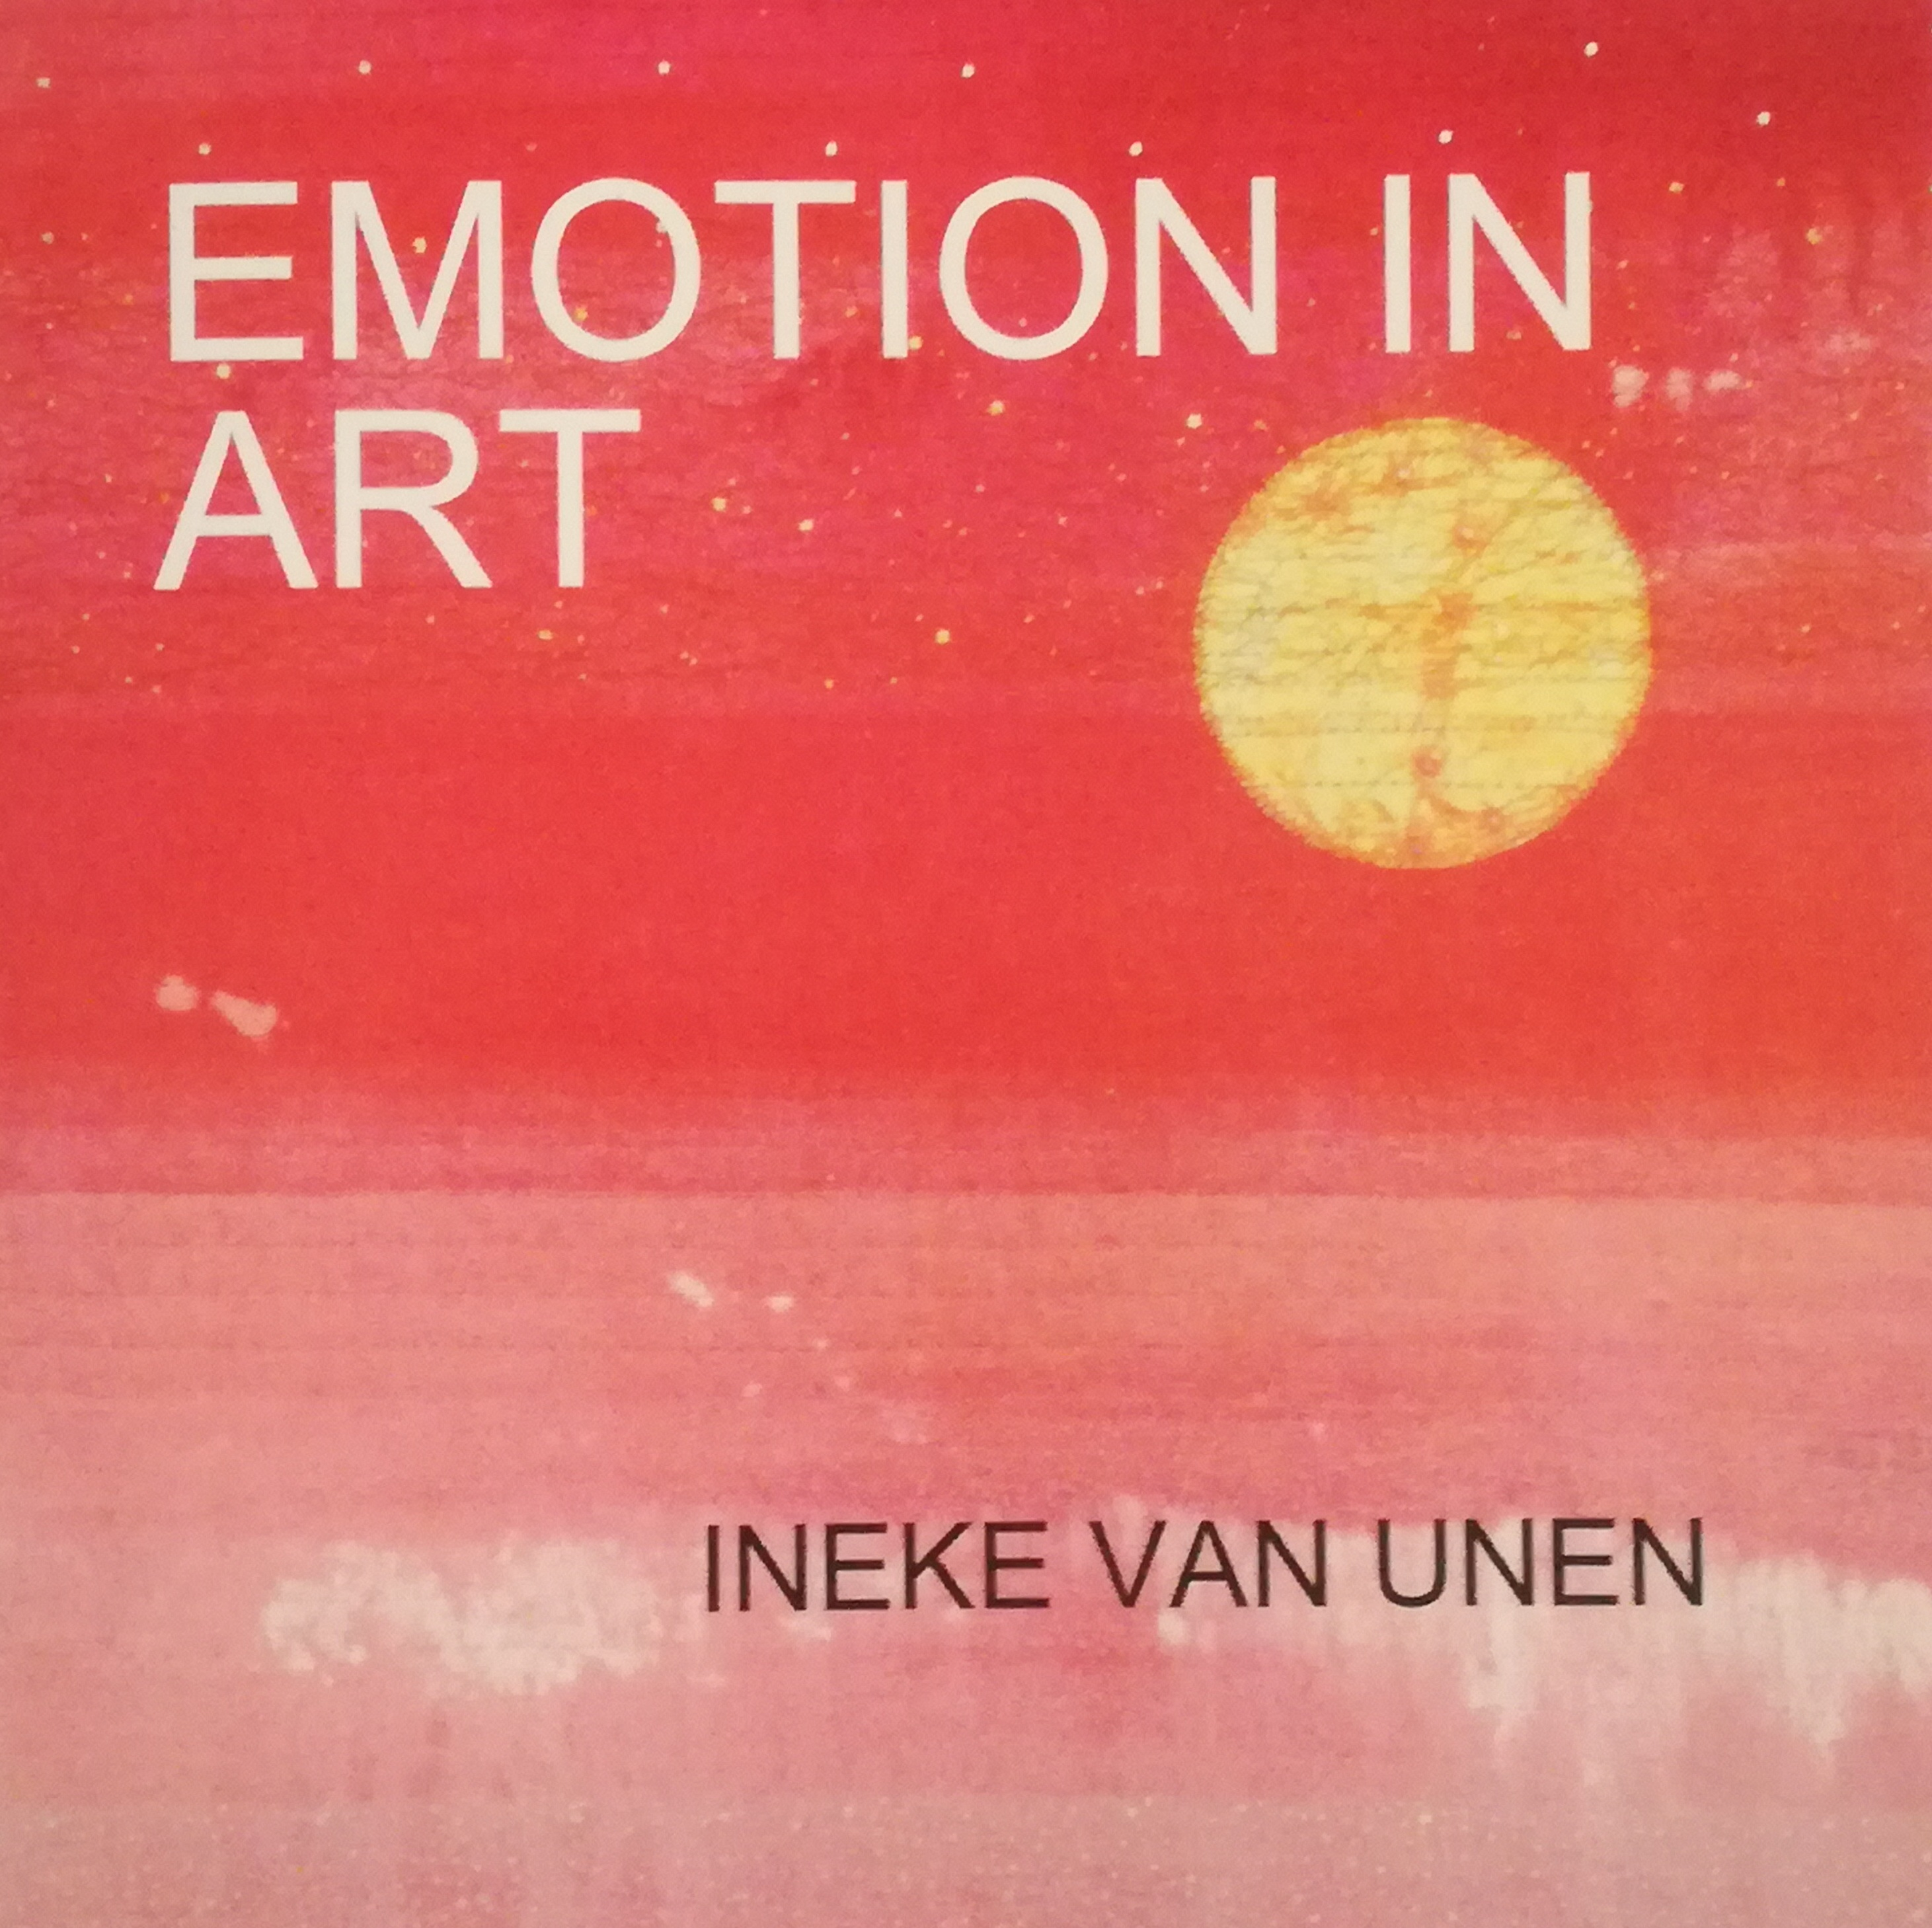 emotion-in-art-2018